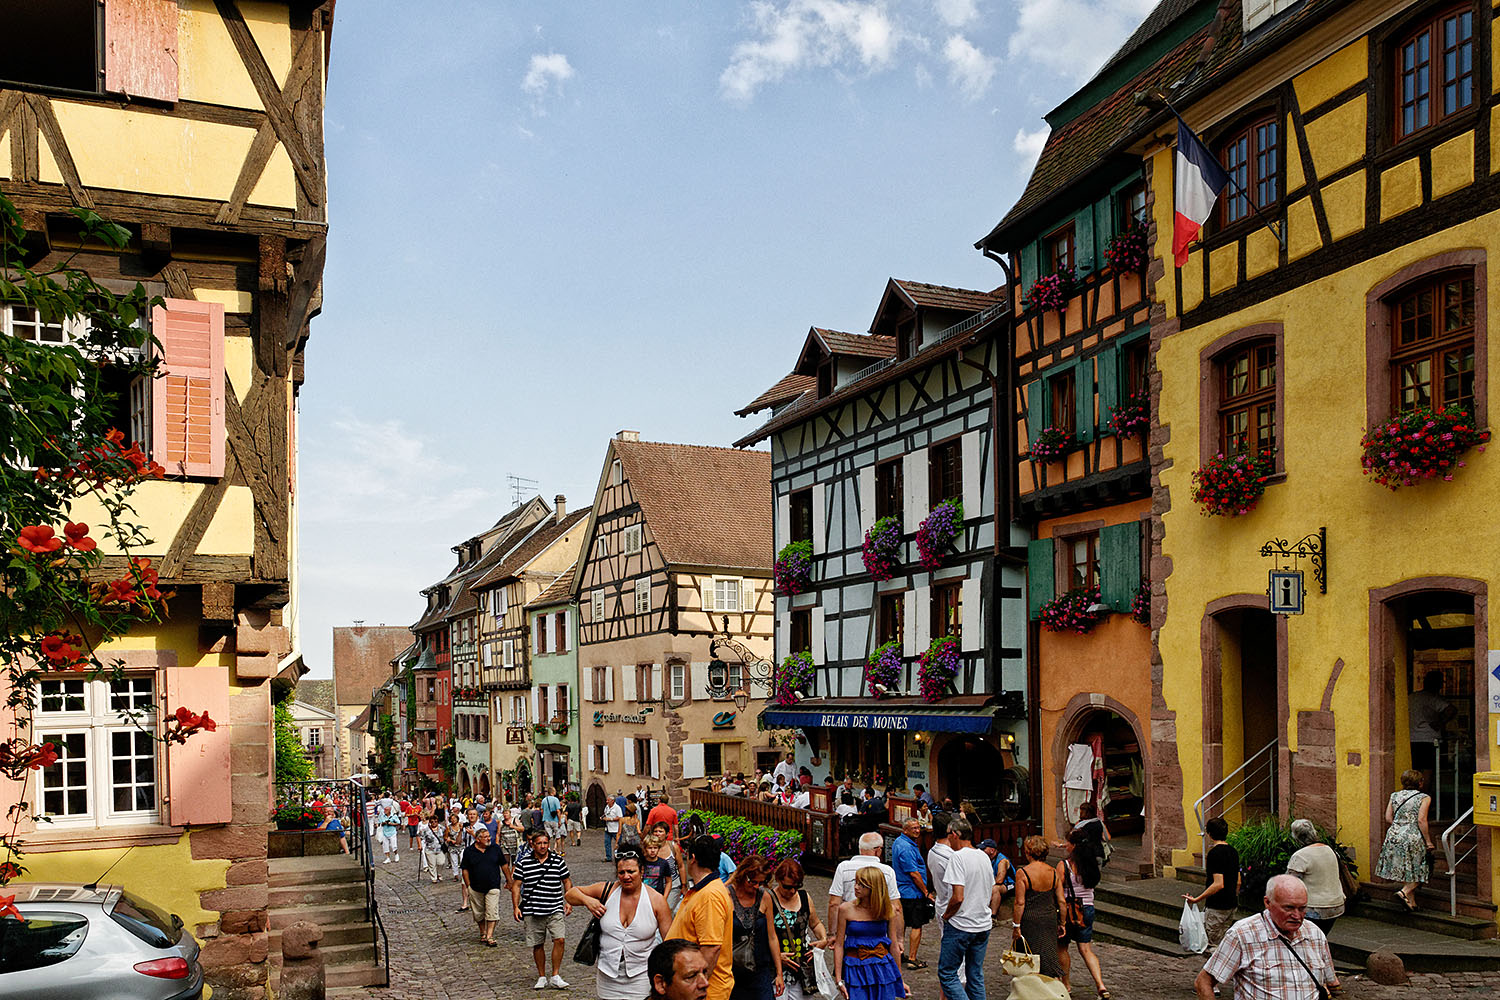 The Kiechle Family Trips Riquewihr